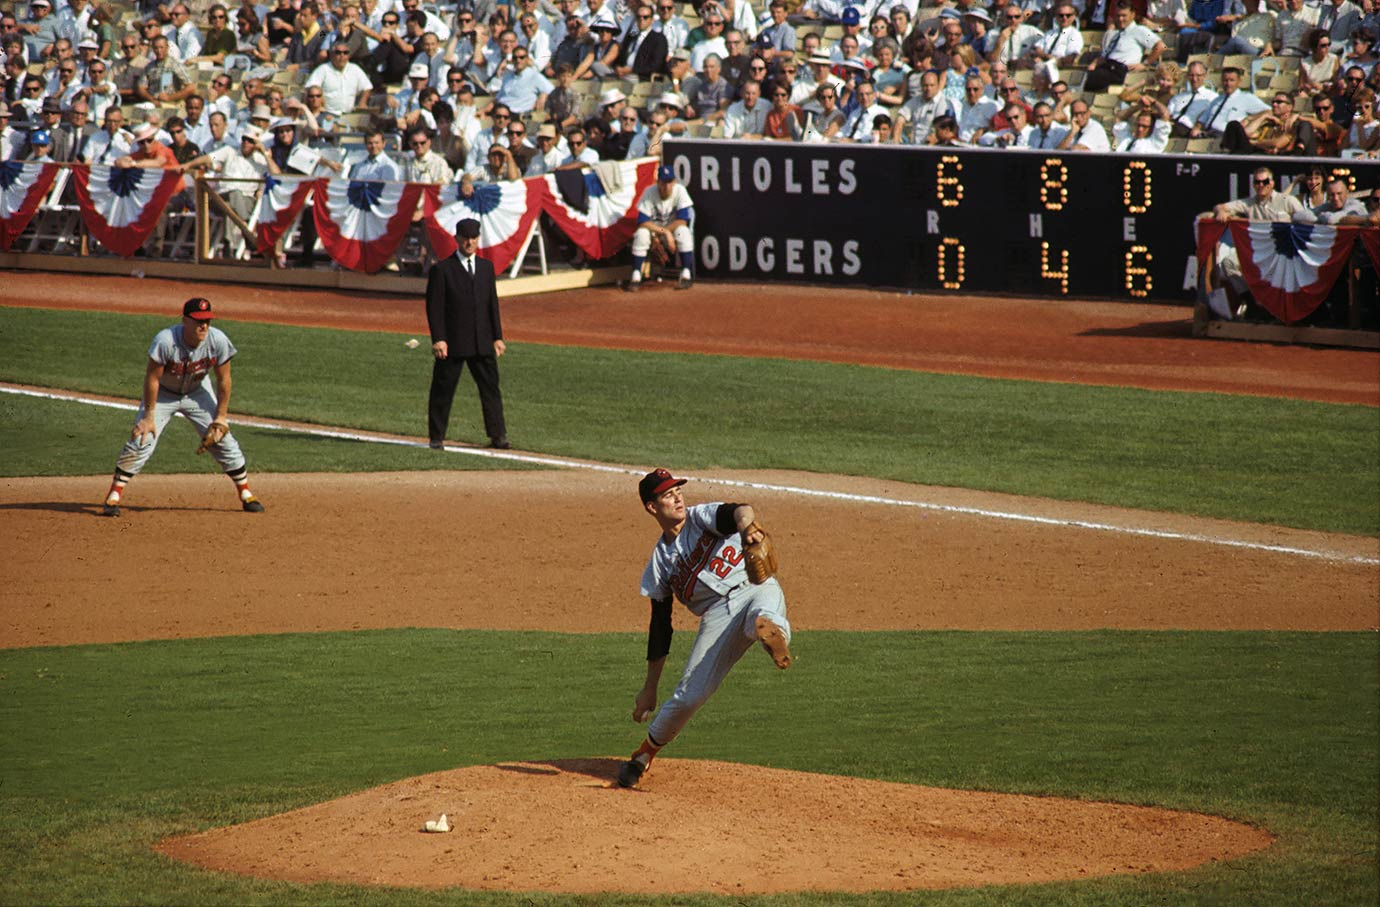 October 6, 1966 — World Series, Game 2 (Baltimore Orioles vs. Los Angeles Dodgers)